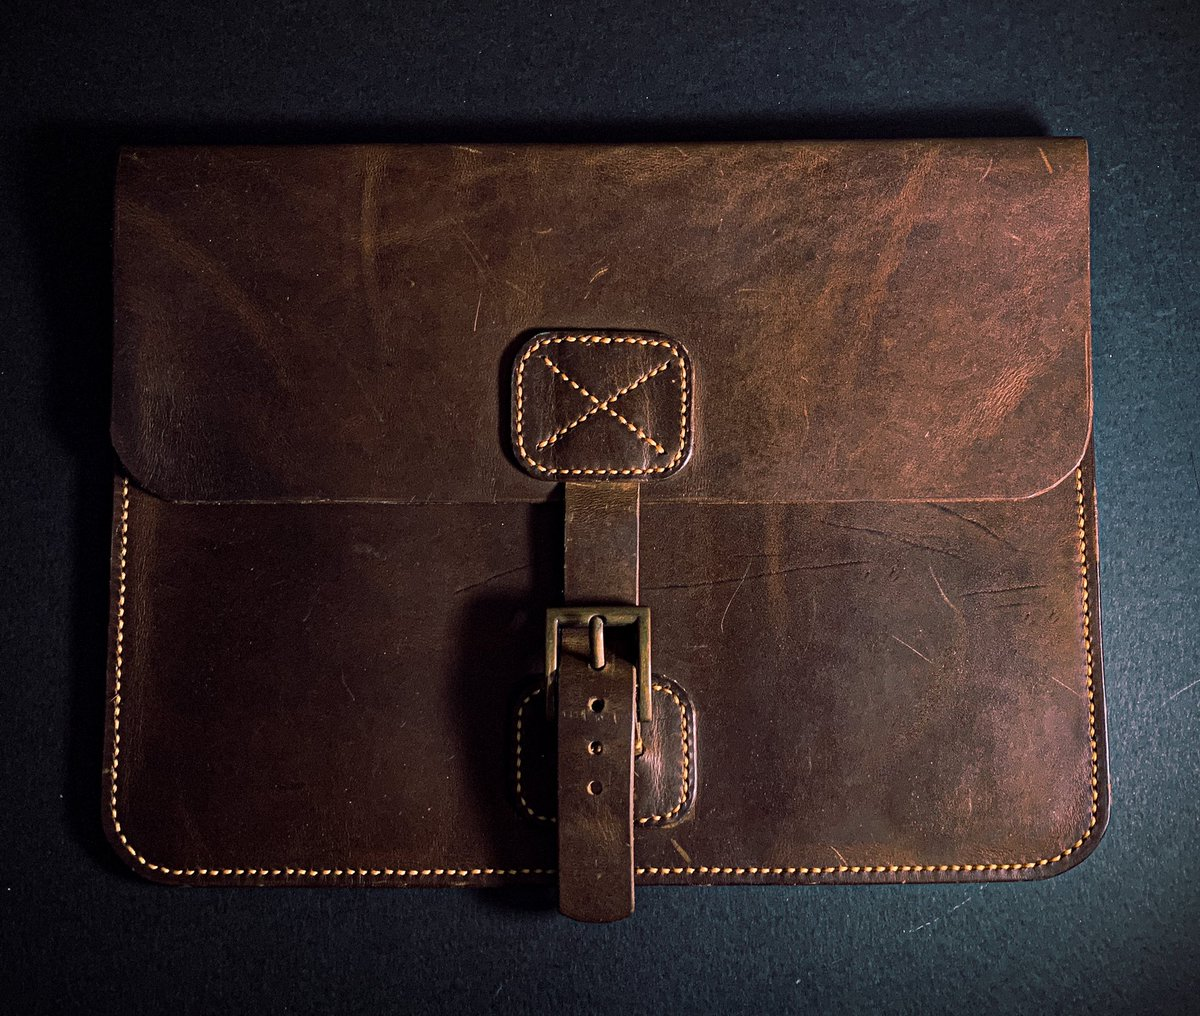 Survey: If this iPad case looks like something you would purchase, please hit the  or leave a comment. I would really appreciate any feedback.   #leathercraft #leather #ipadcase #ipadpro #ipadprocreate #leatherwork #leathercase #leatherbag pic.twitter.com/mv5TT7aXpI